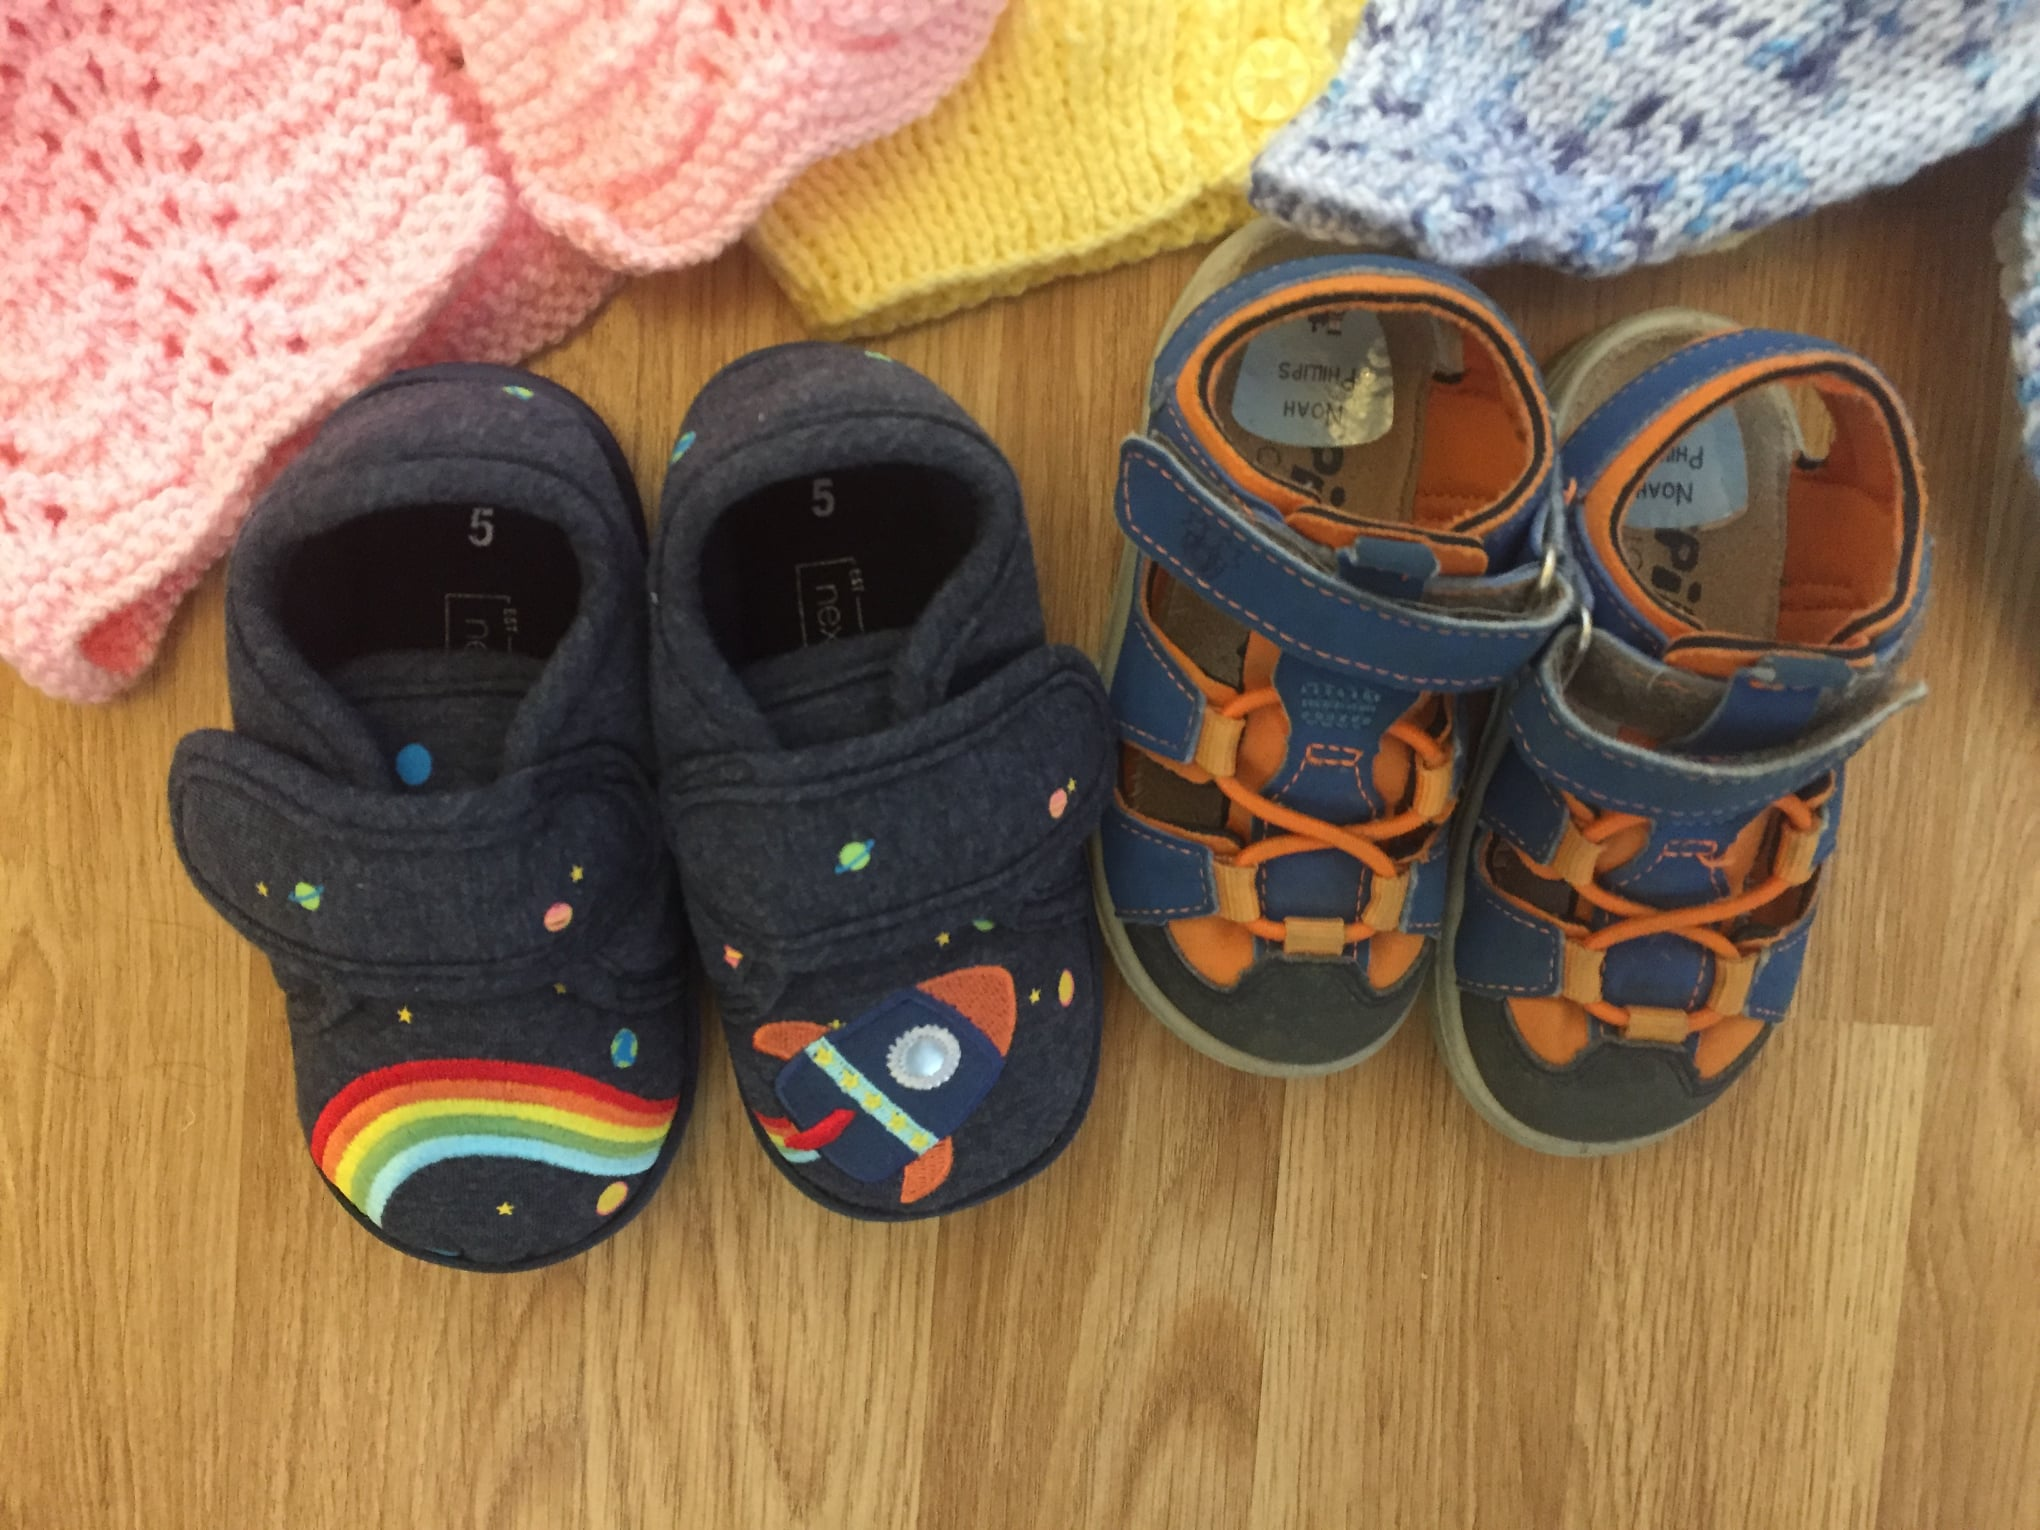 Tiny shoes donated